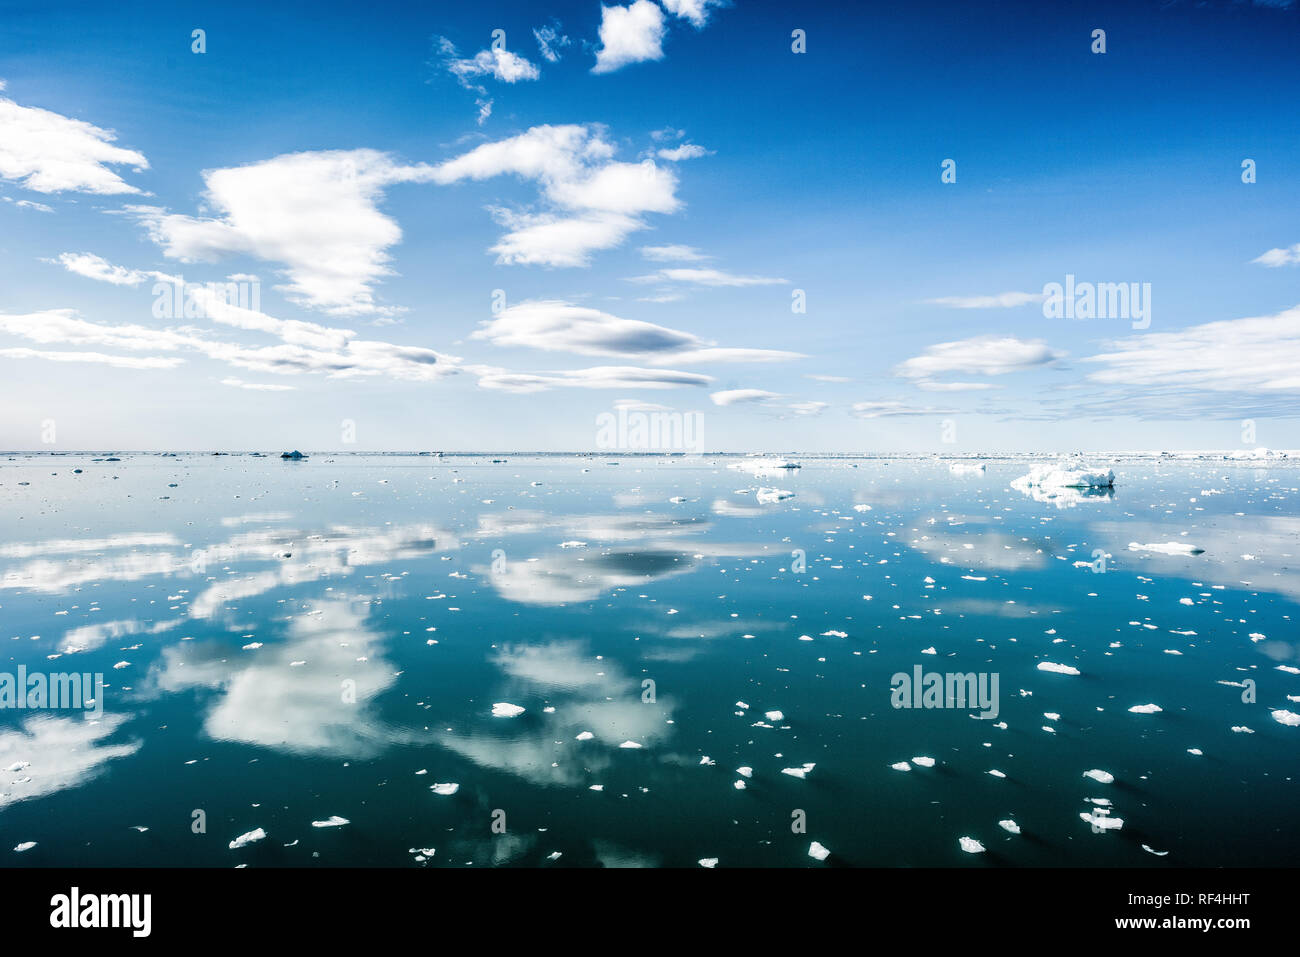 NORDAUSTLANDET, Svalbard - Ice and calm waters next to the massive Bråsvellbreen glacier on Nordaustlandet, the second-largest island in the Svalbard archipeligo. - Stock Image